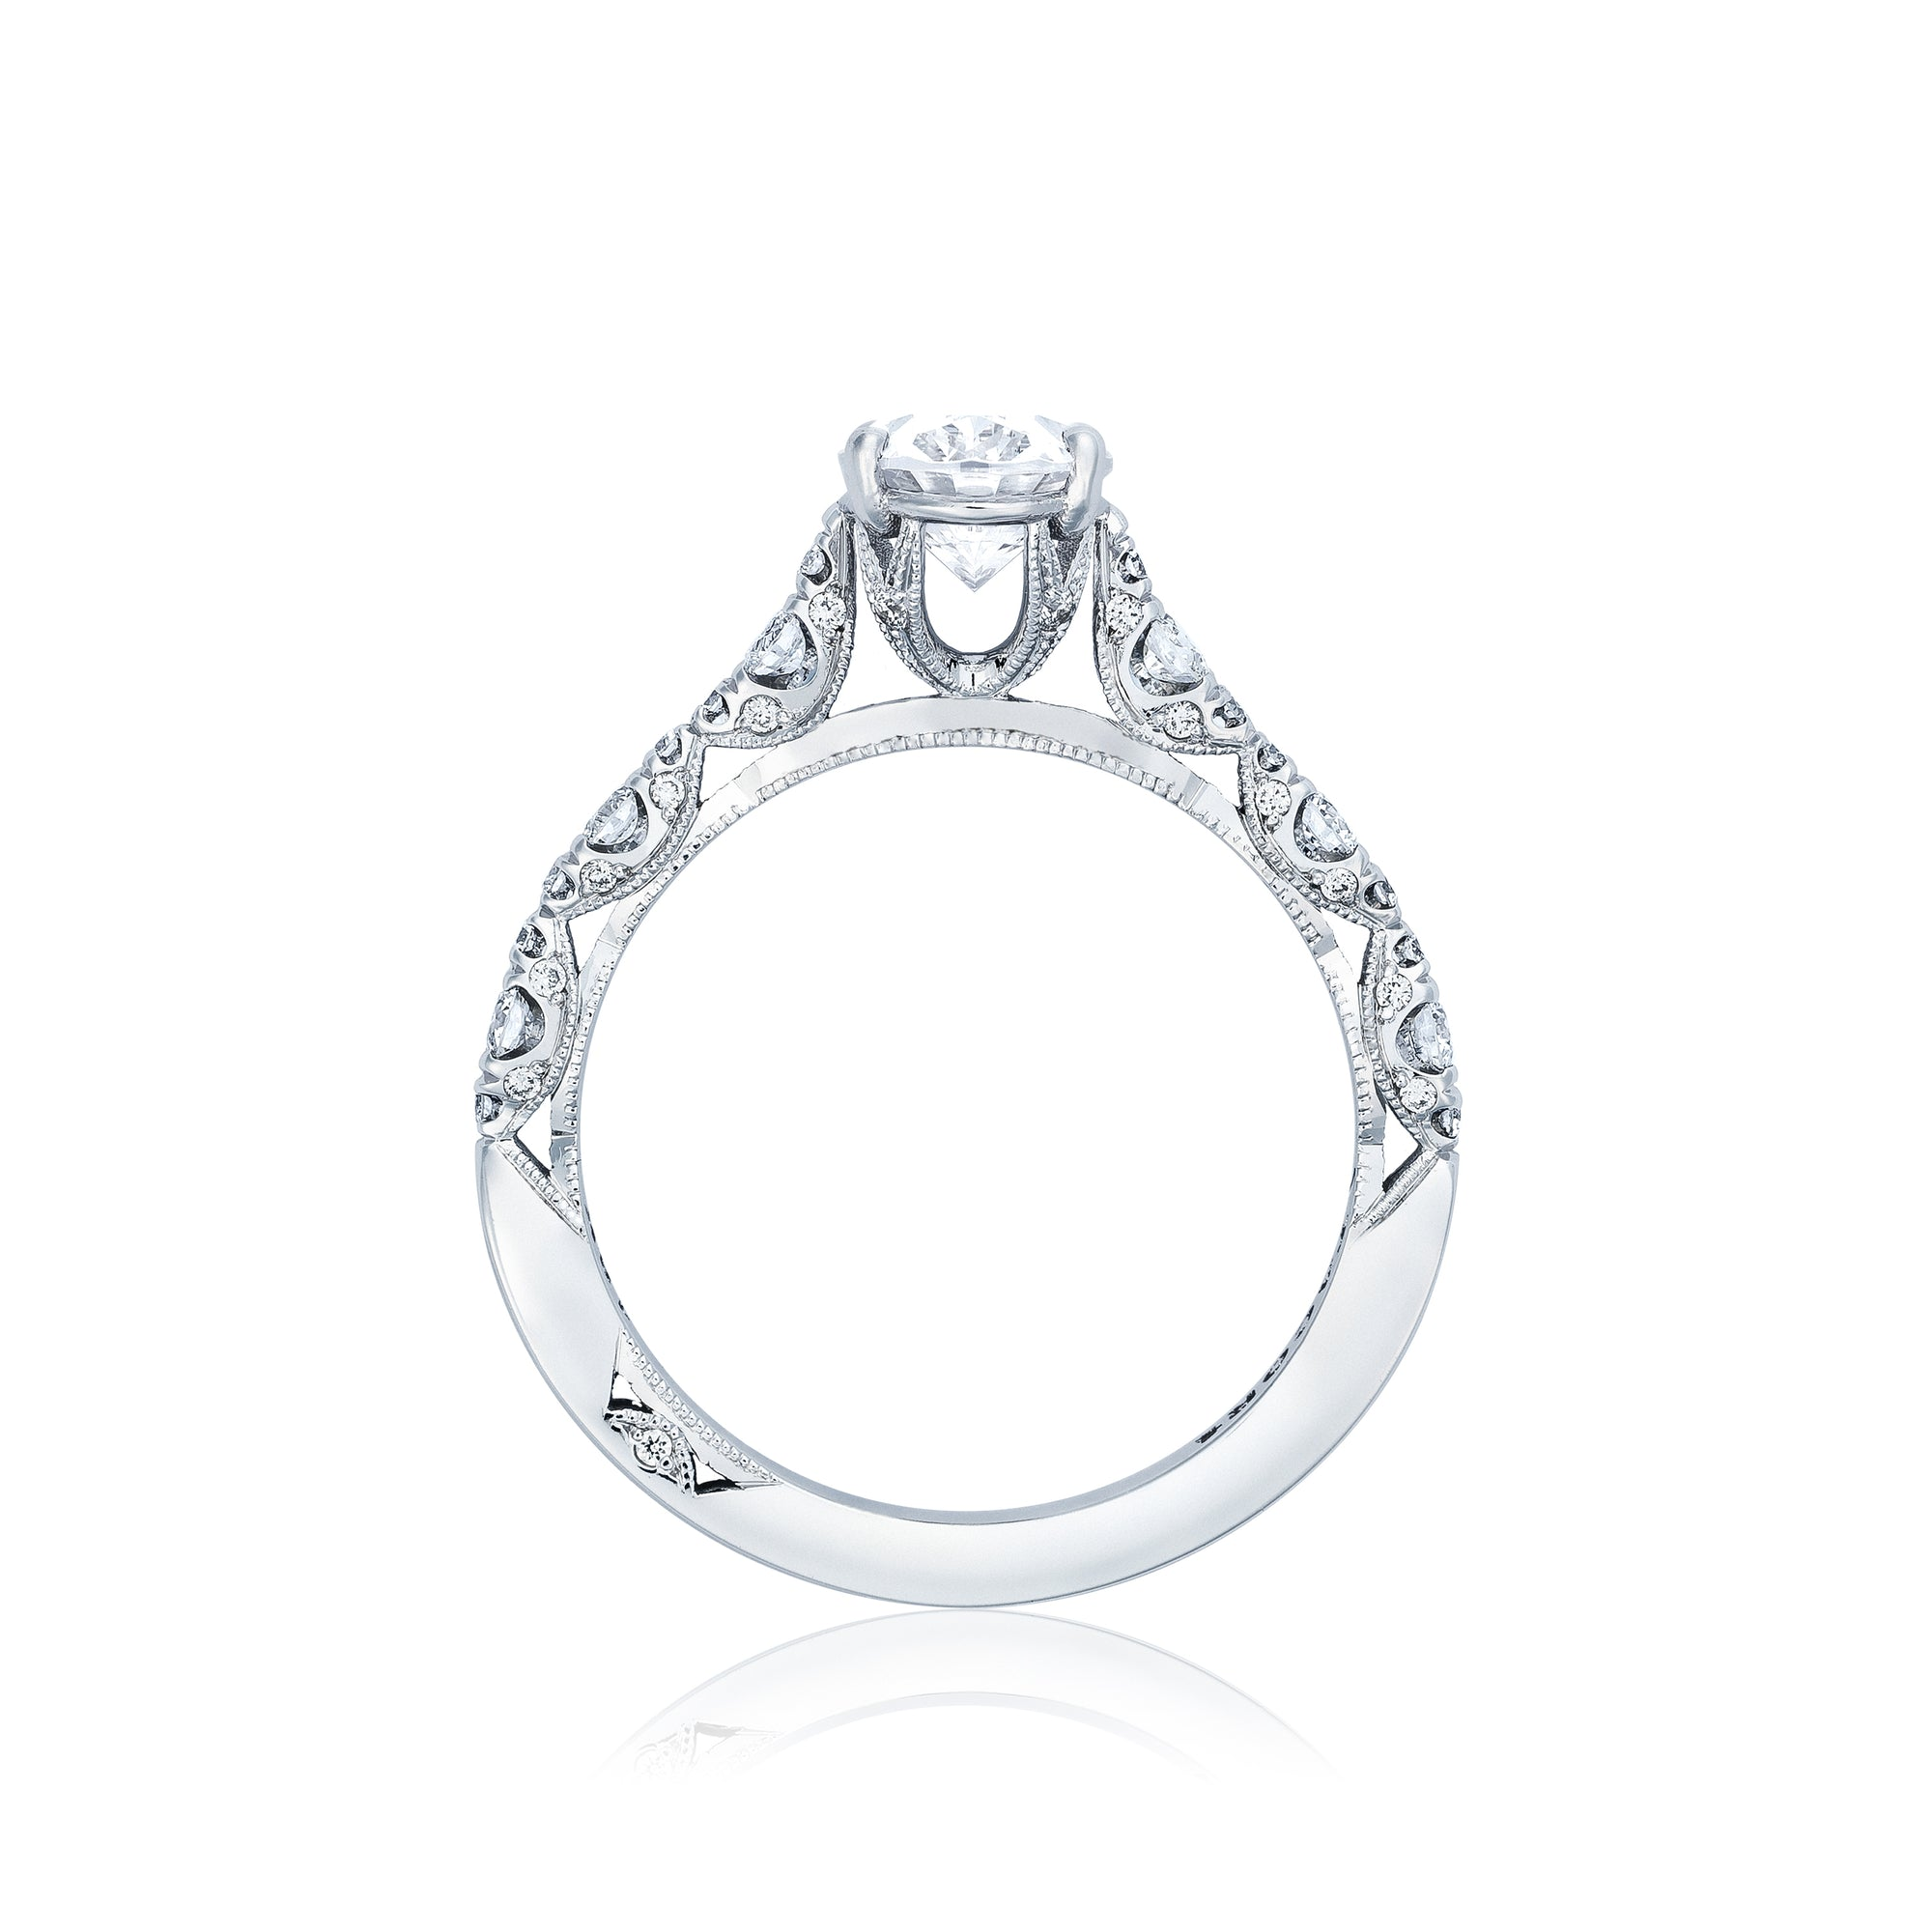 l crescent rings oval ring engagement tacori miller brent products petite